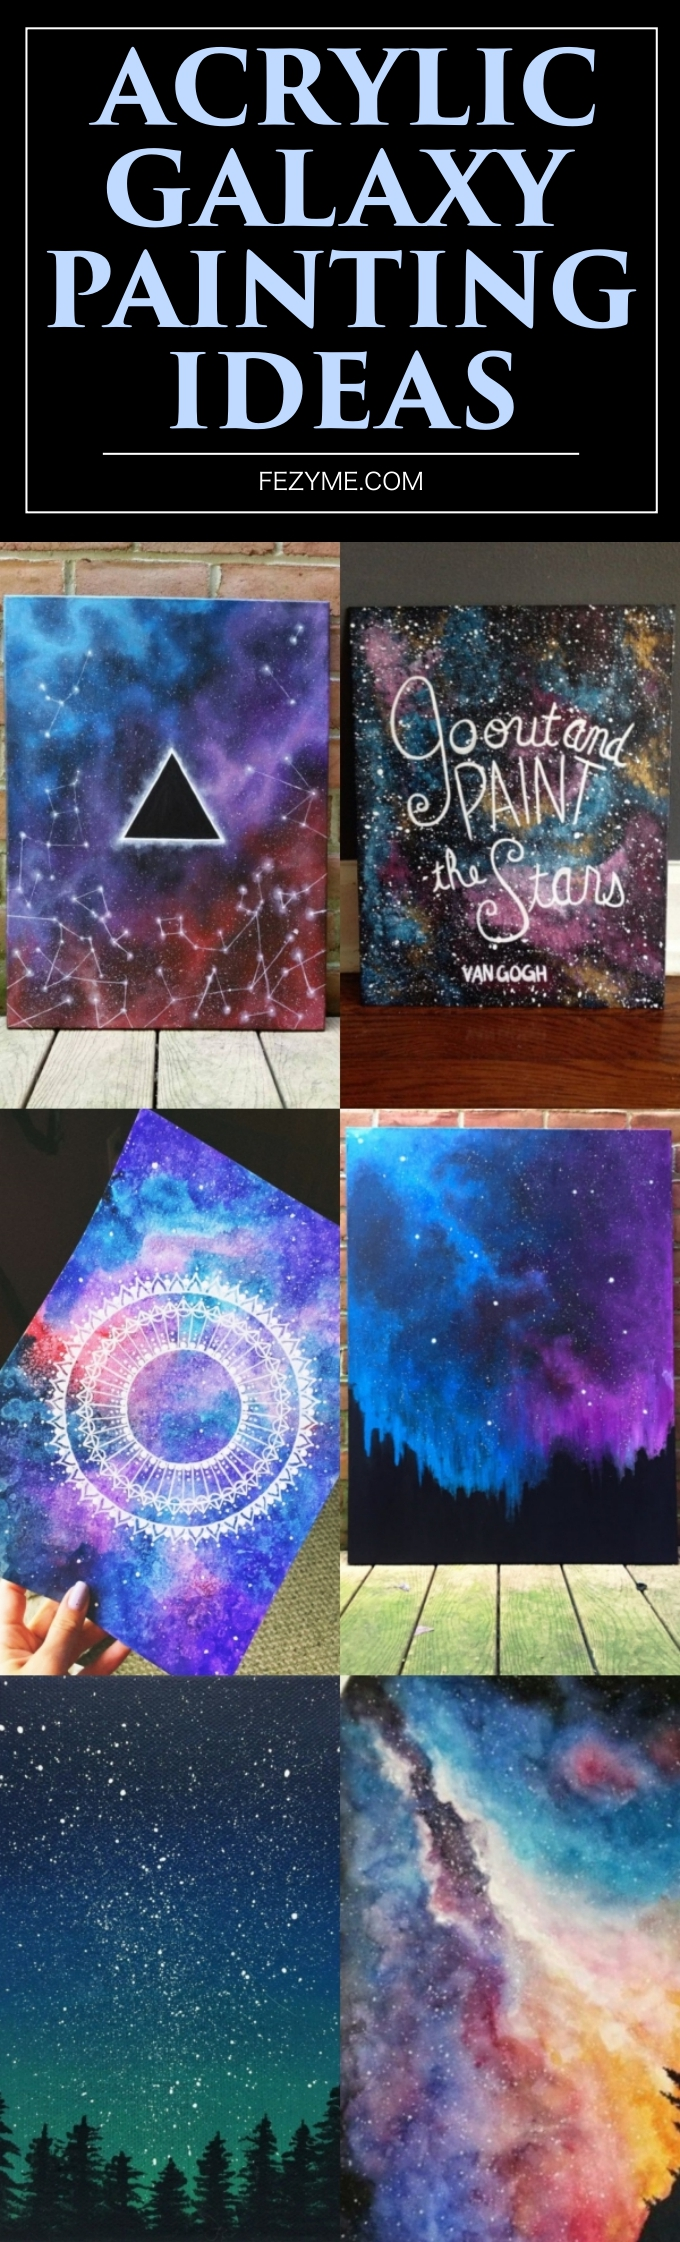 Acrylic Galaxy Painting Ideas